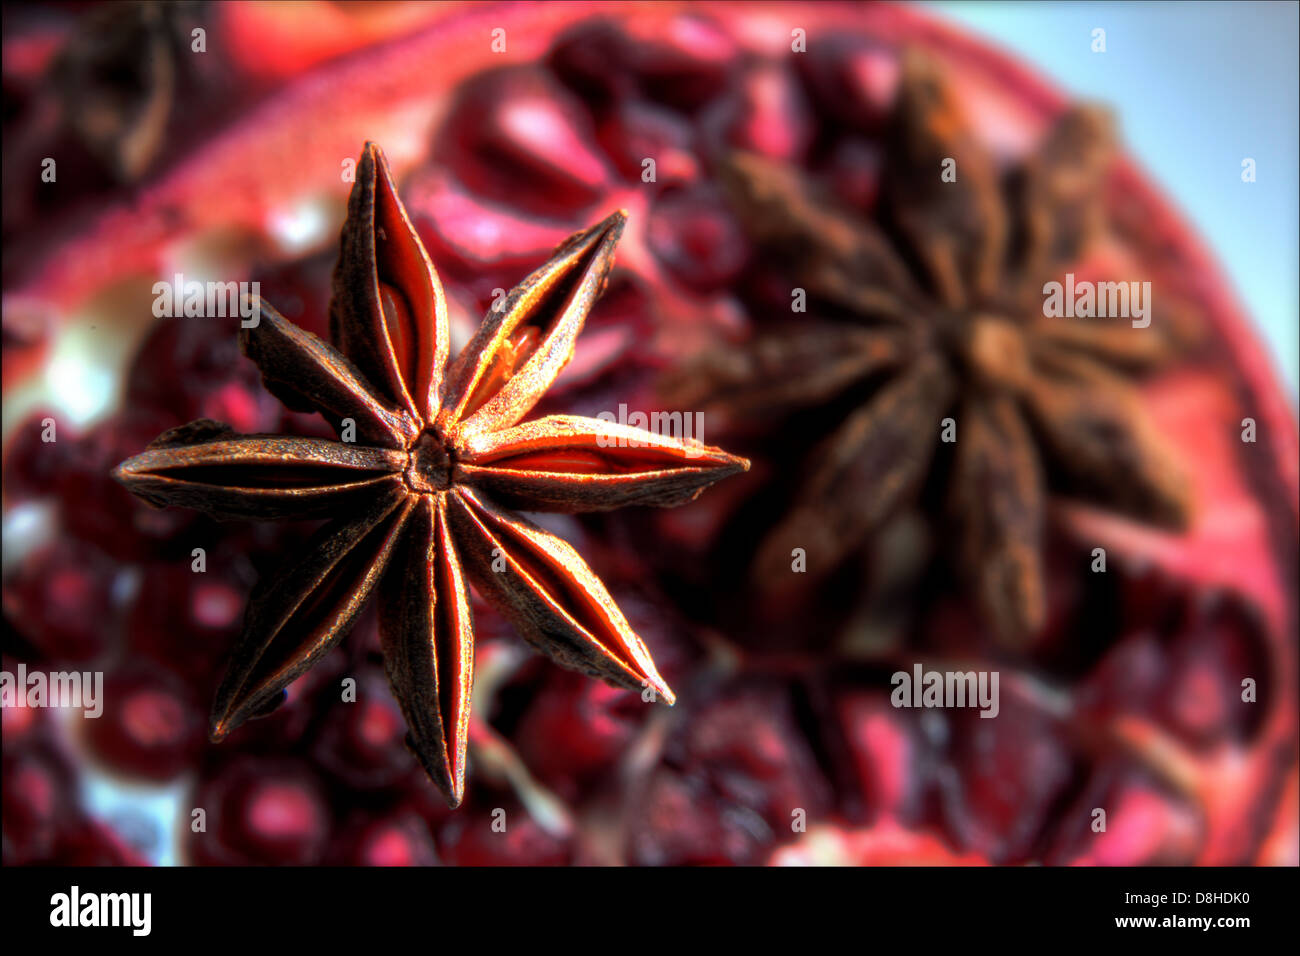 Star Anise Illicium verum anise-like spice used in Chinese cookery - Stock Image